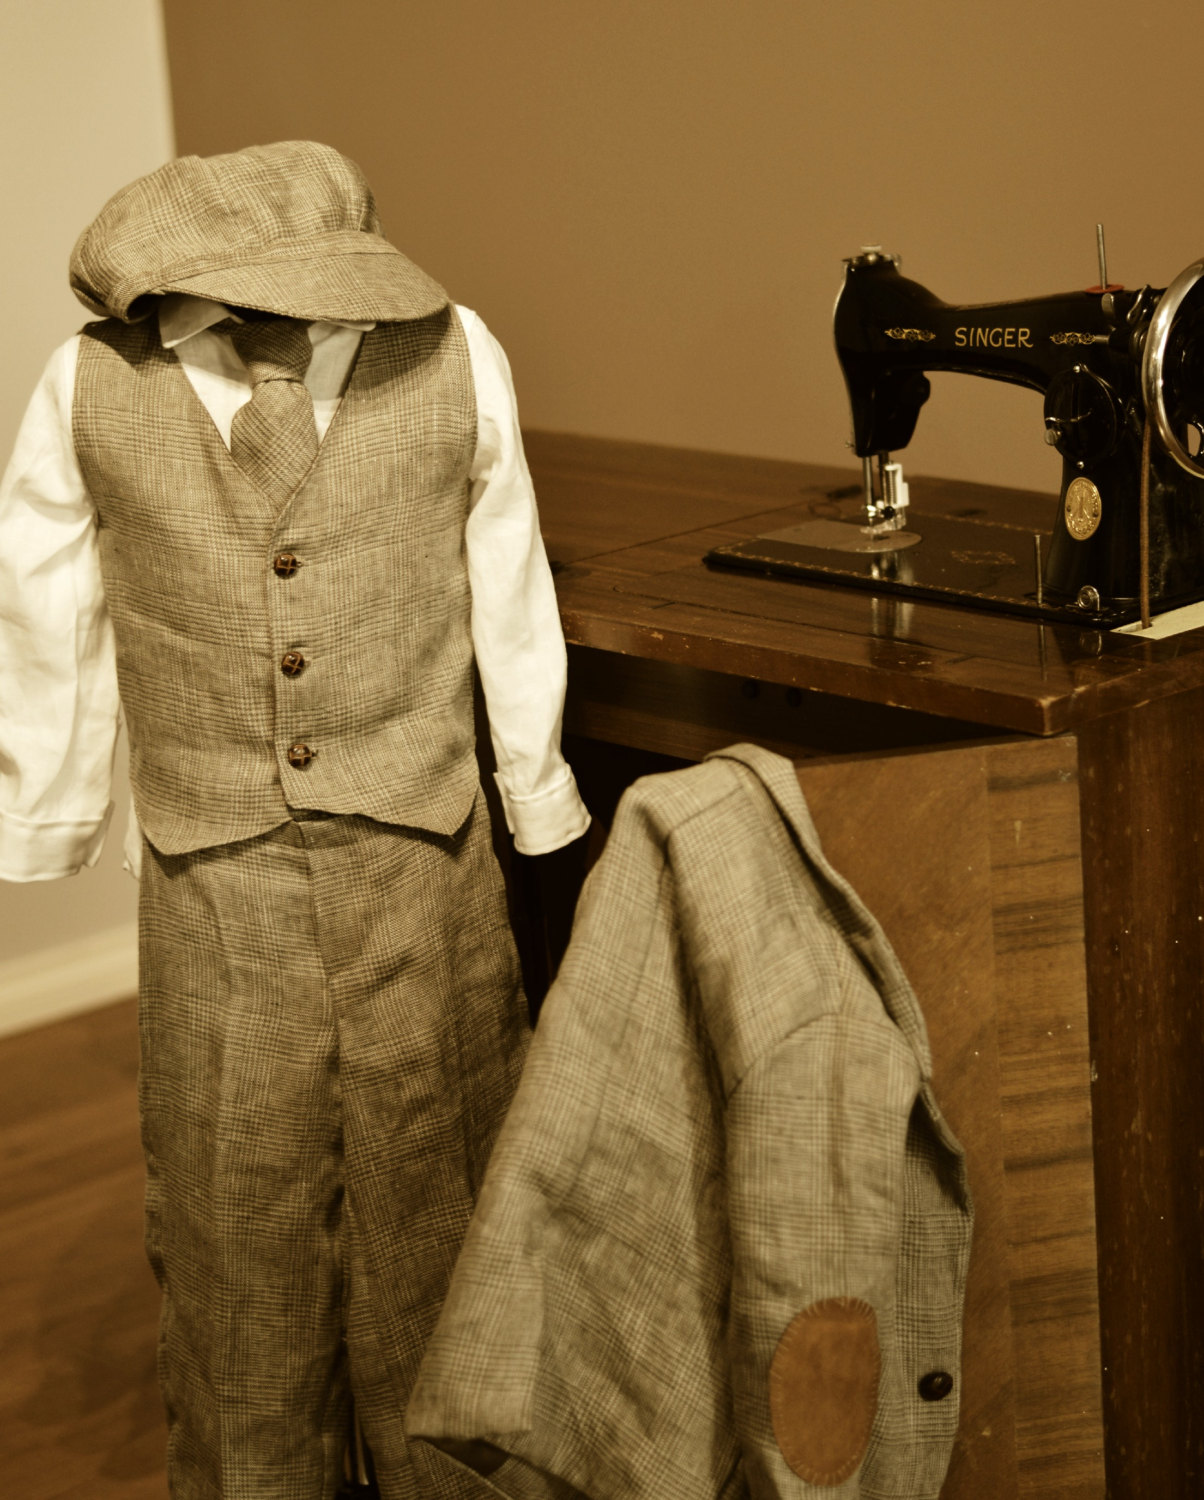 Boys Suit , 6 piece, Italian linen. Jacket with genuine leather elbow  patches, Vest, Linen shirt, Pants, Tie and Bakerboy style Hat